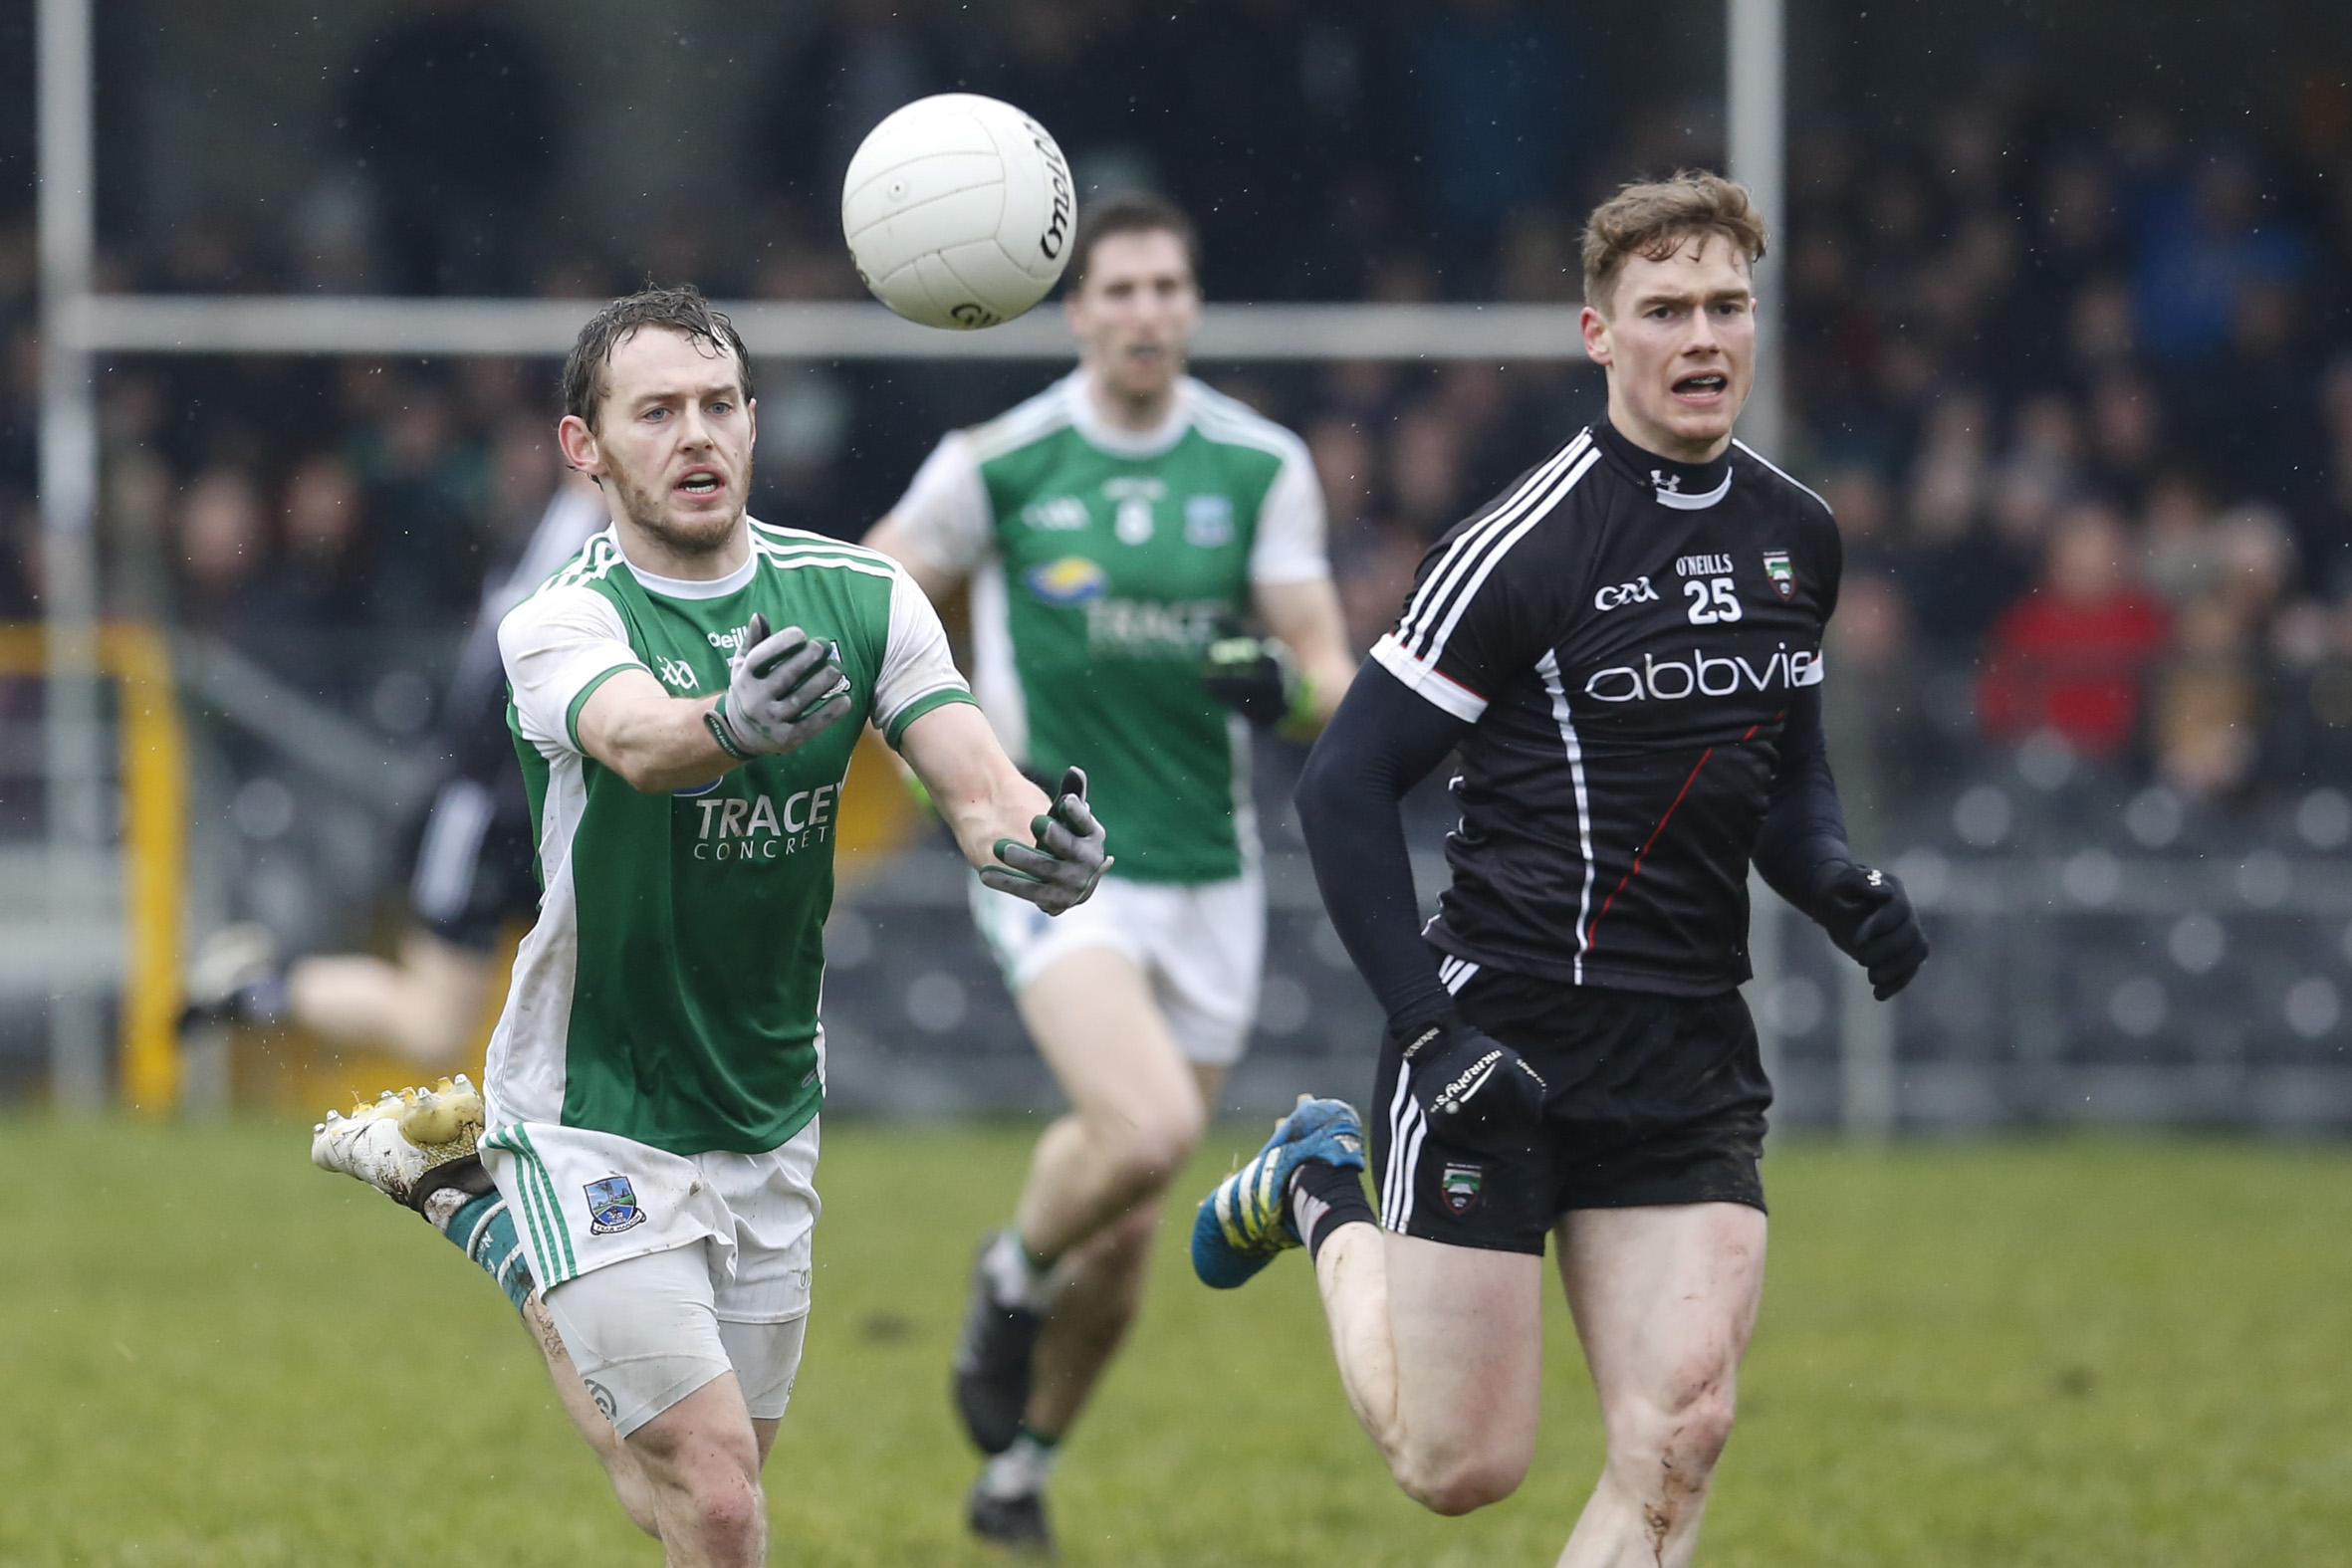 Declan McCusker moves the ball forward during Fermanagh's win over over Sligo in Markievicz Park on Sunday.